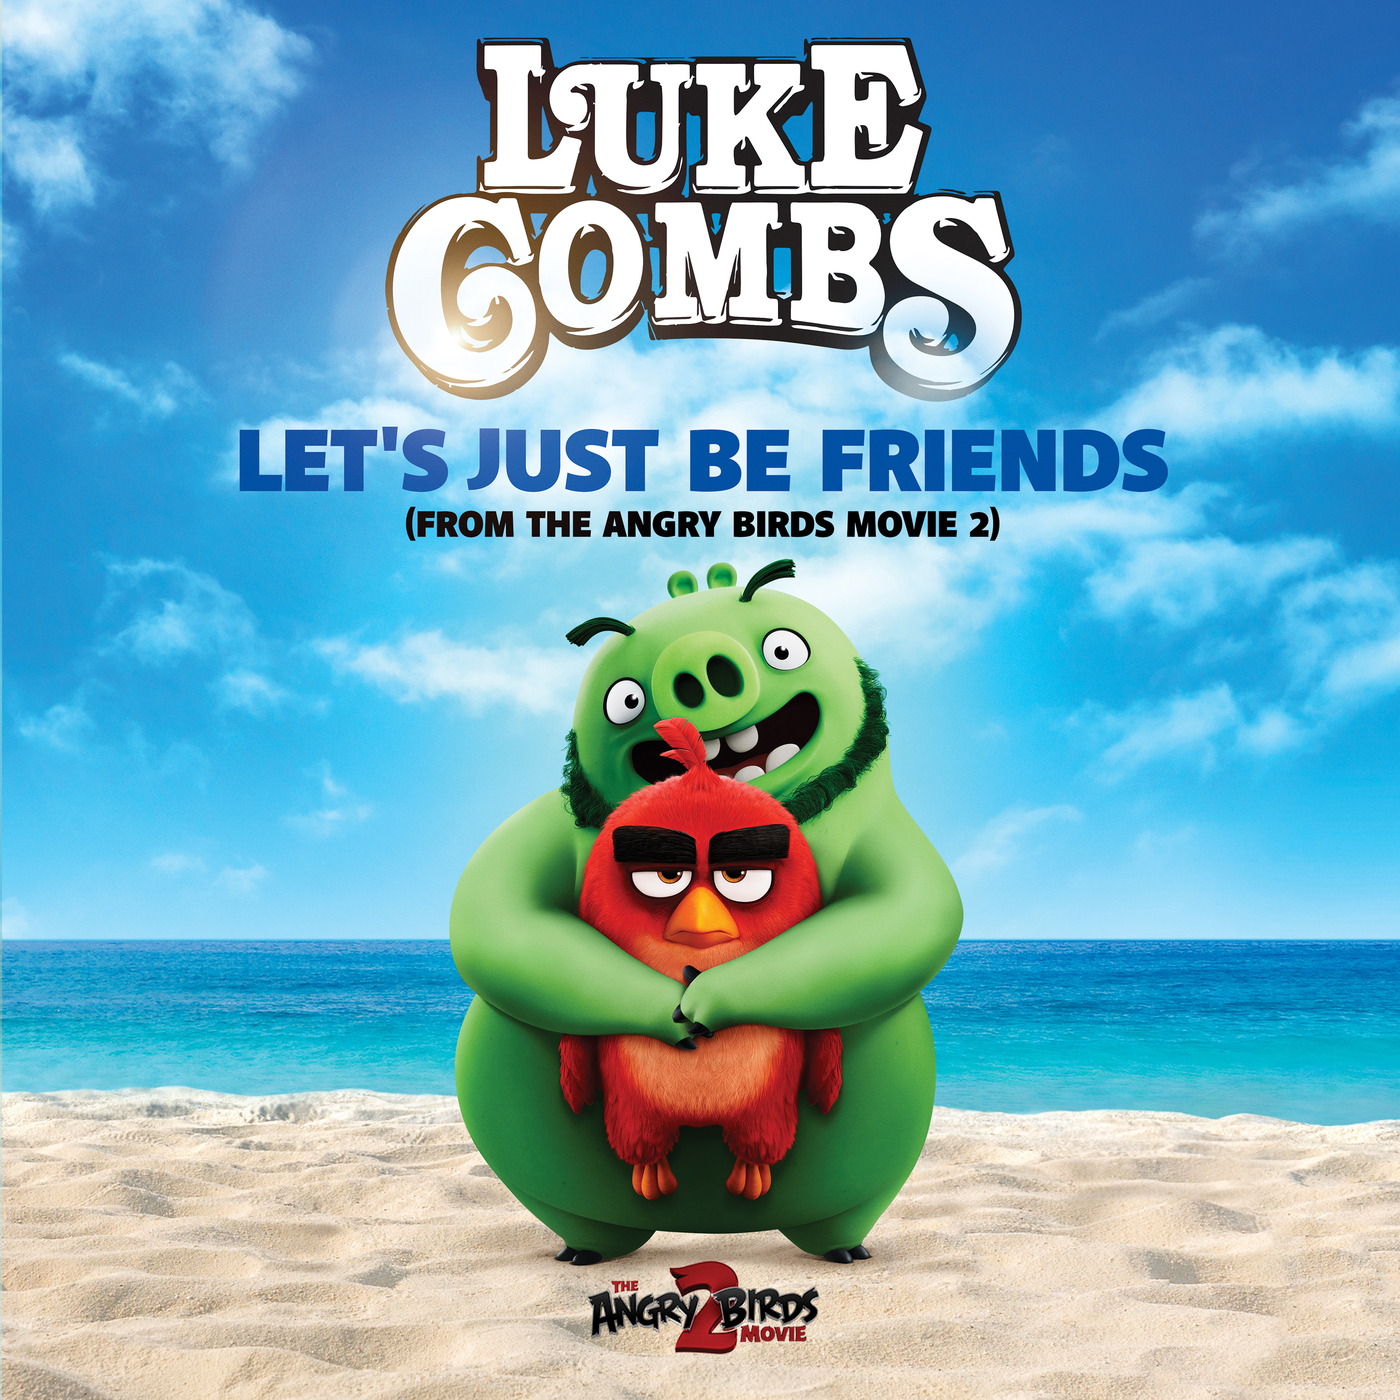 Let's Just Be Friends (From The Angry Birds Movie 2) - Luke Combs